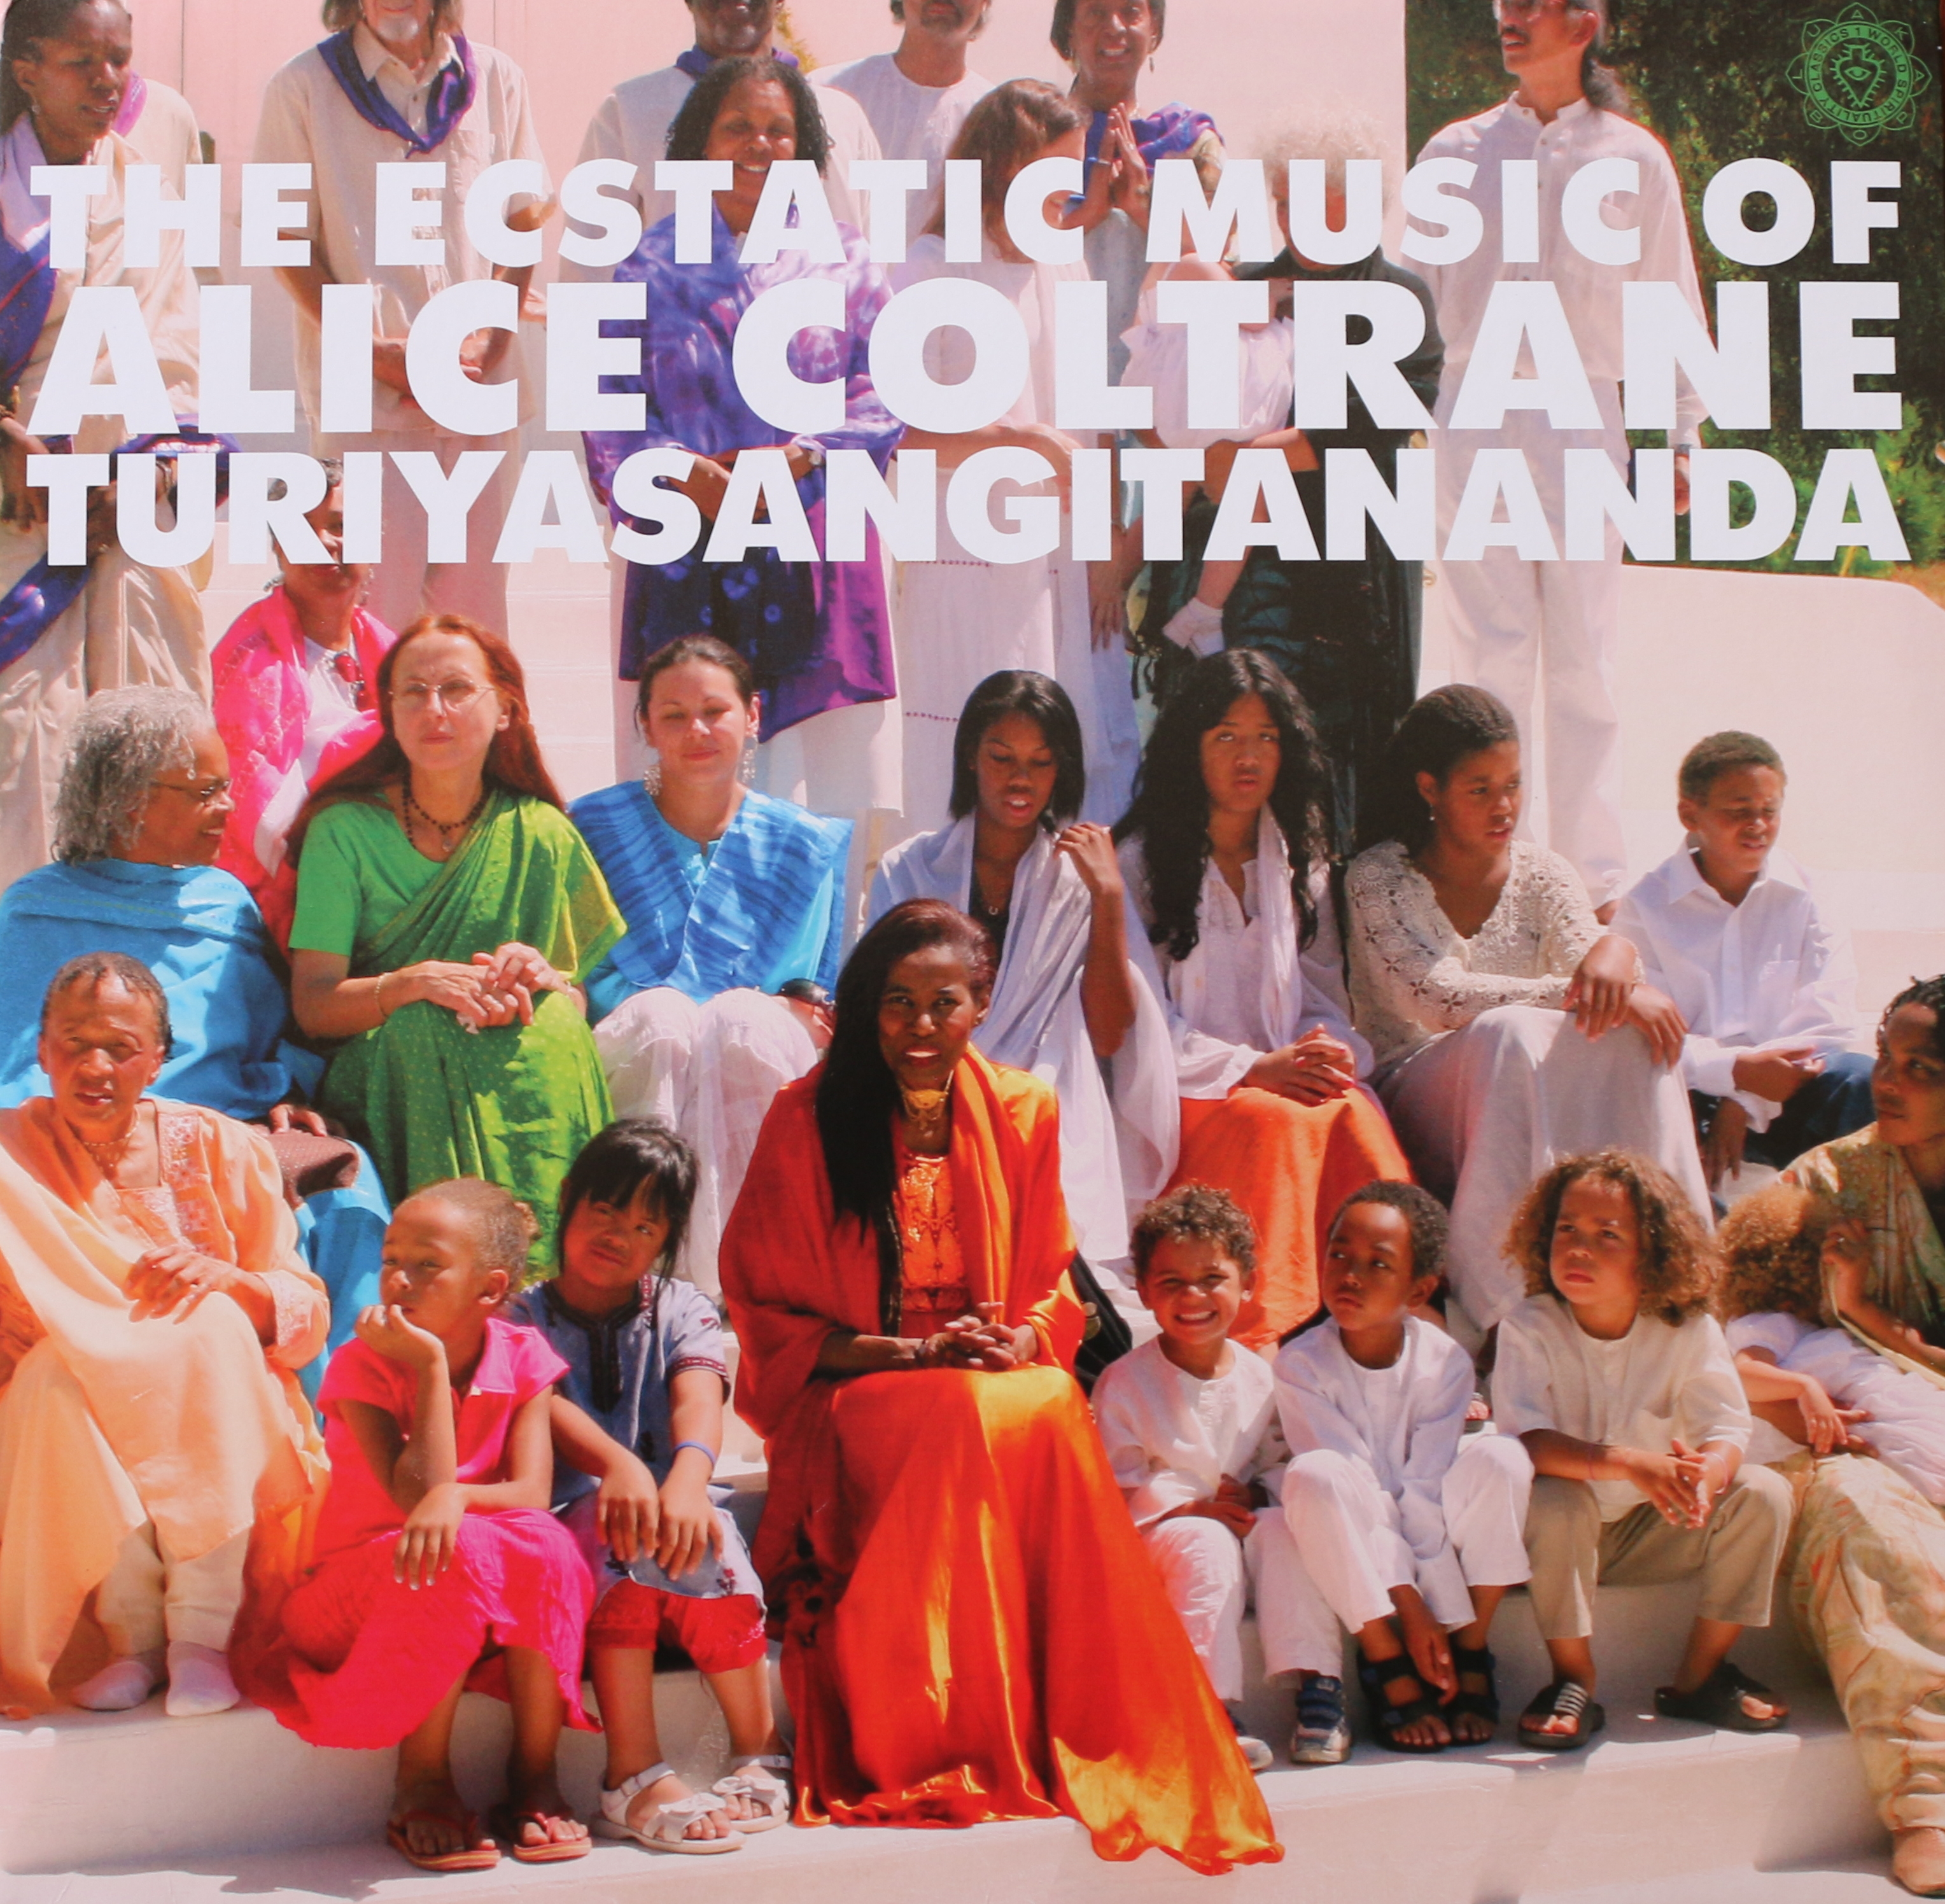 The Ecstatic Music Of Alice Coltrane TuriyaSangitananda & the Sai Anantam Ashram